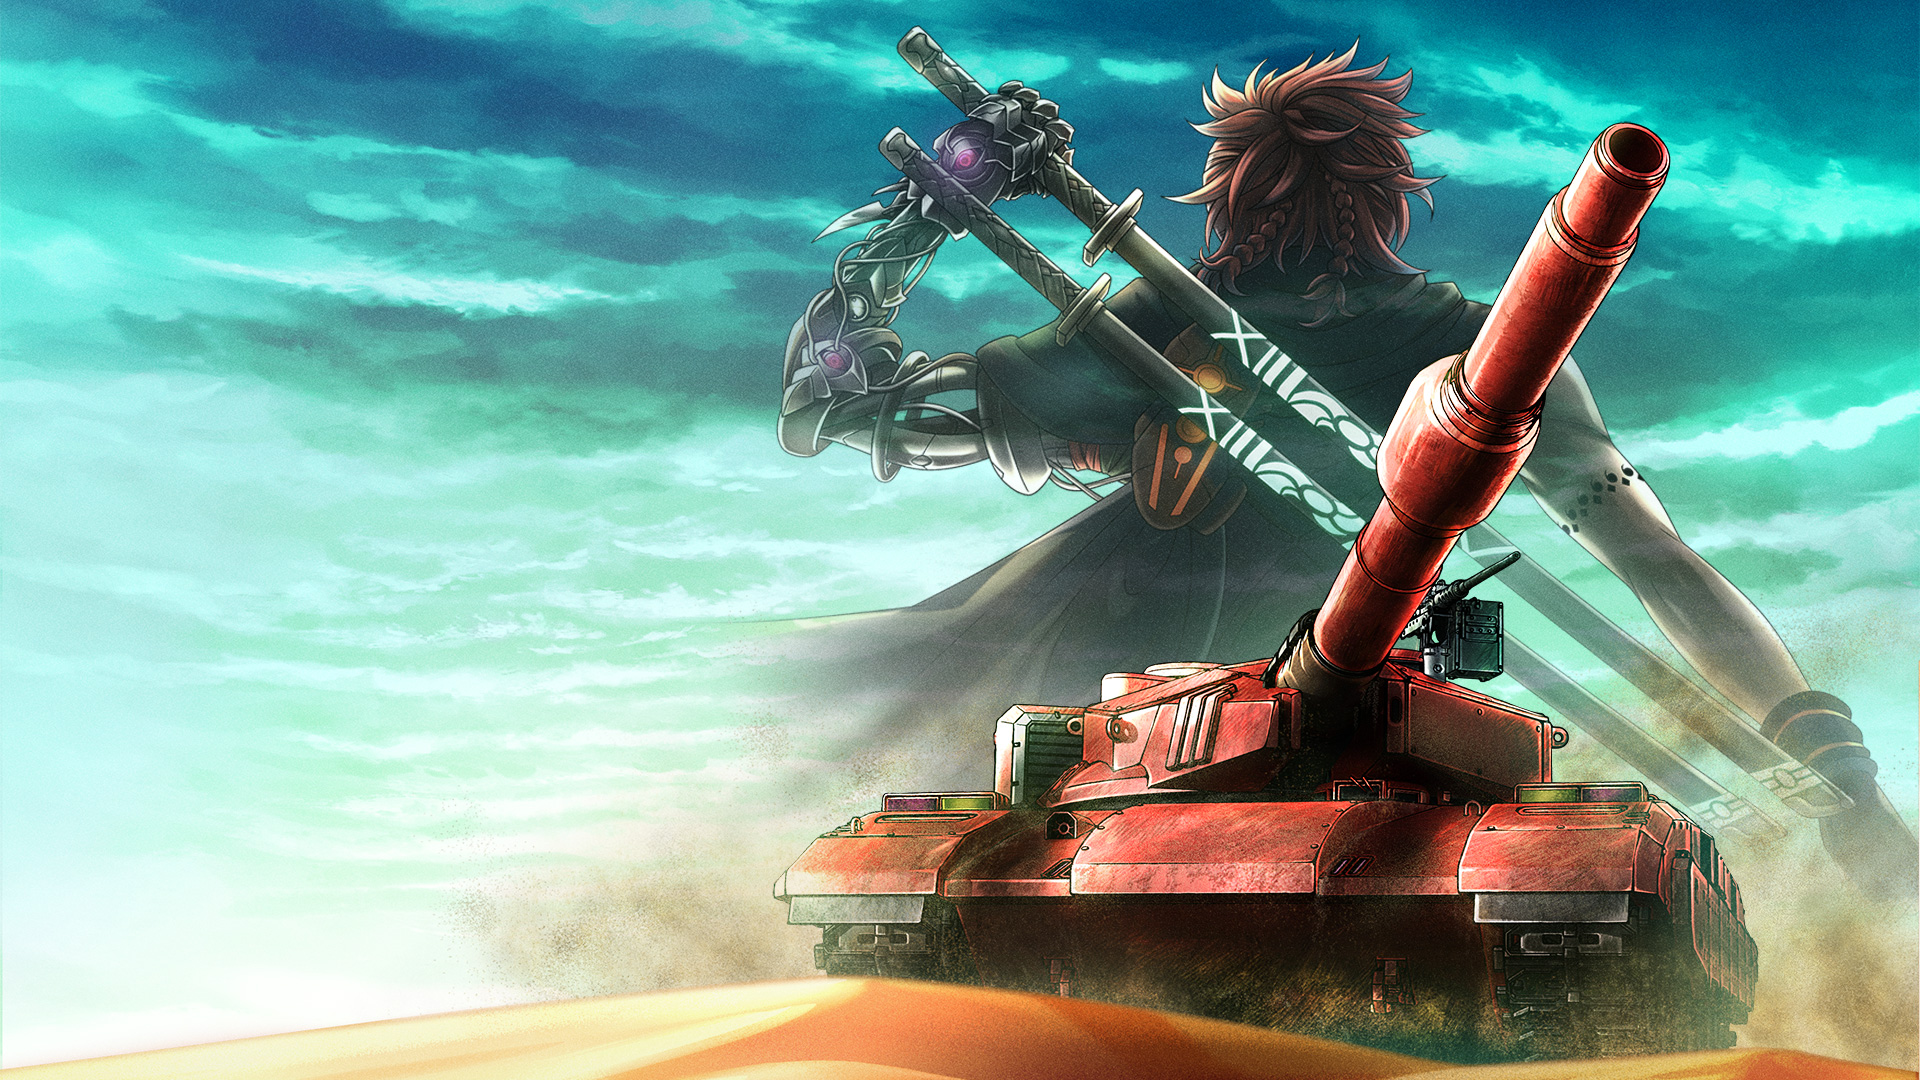 METAL MAX Xeno Announced For Western PS4 Release